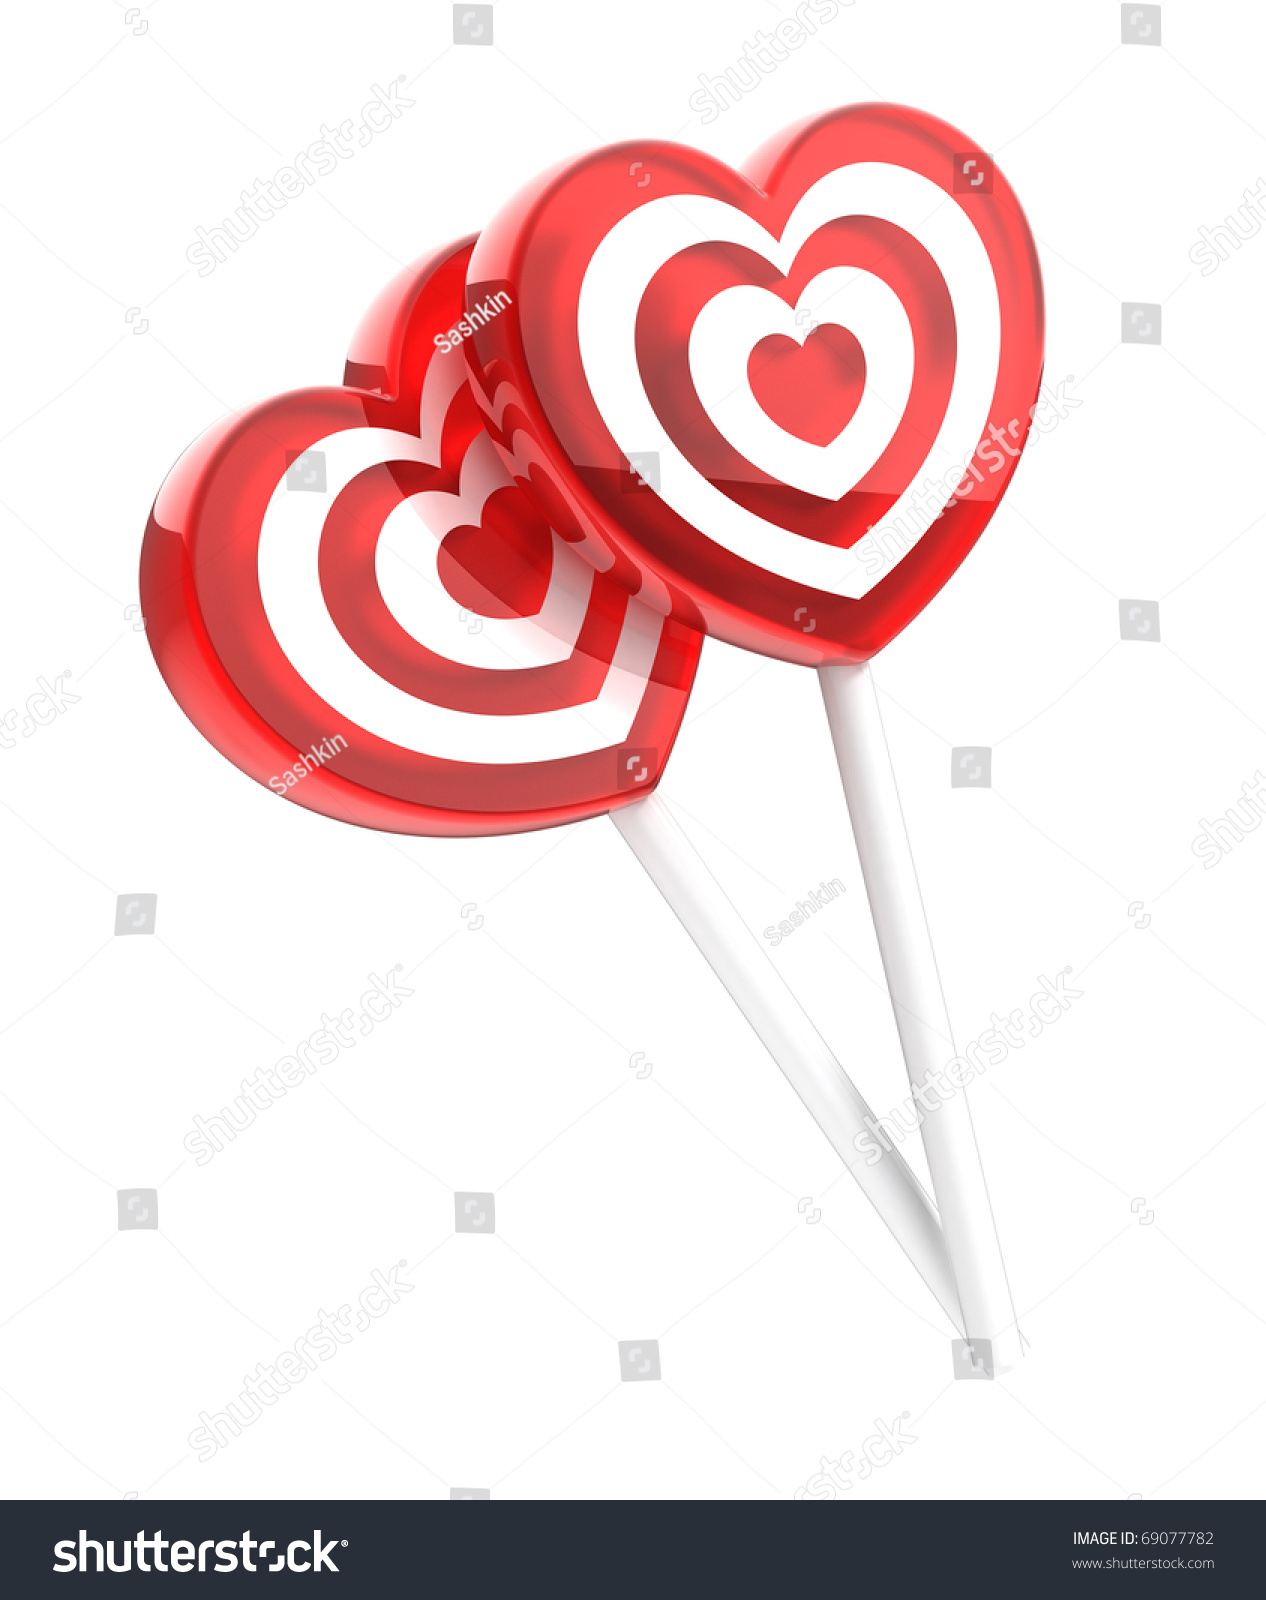 Two lollipops heart shaped isolated on stock illustration 69077782 two lollipops heart shaped isolated on white thecheapjerseys Gallery